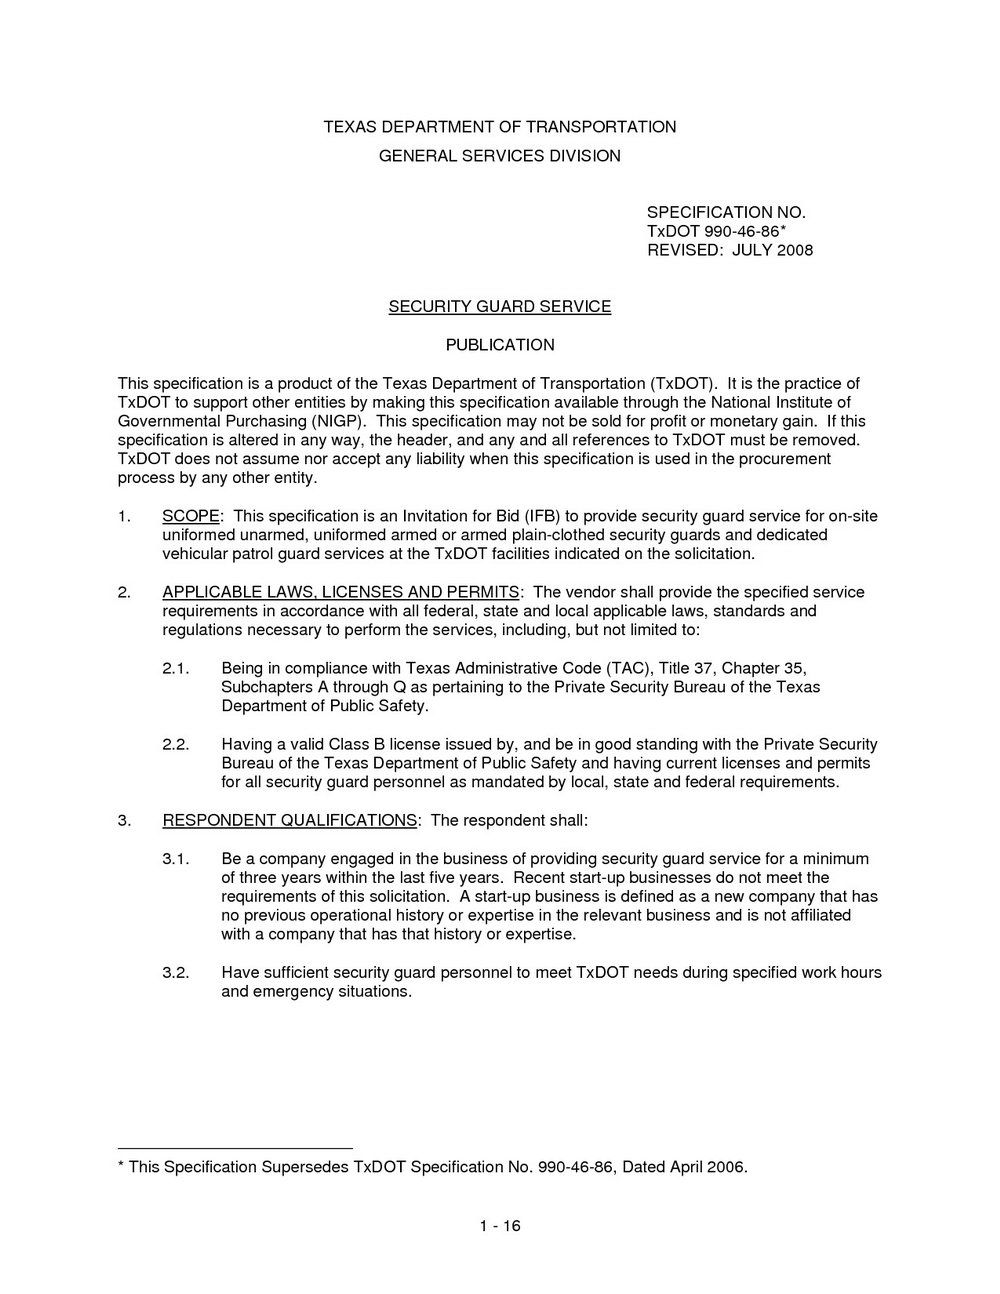 Sample Resume For Unarmed Security Guard